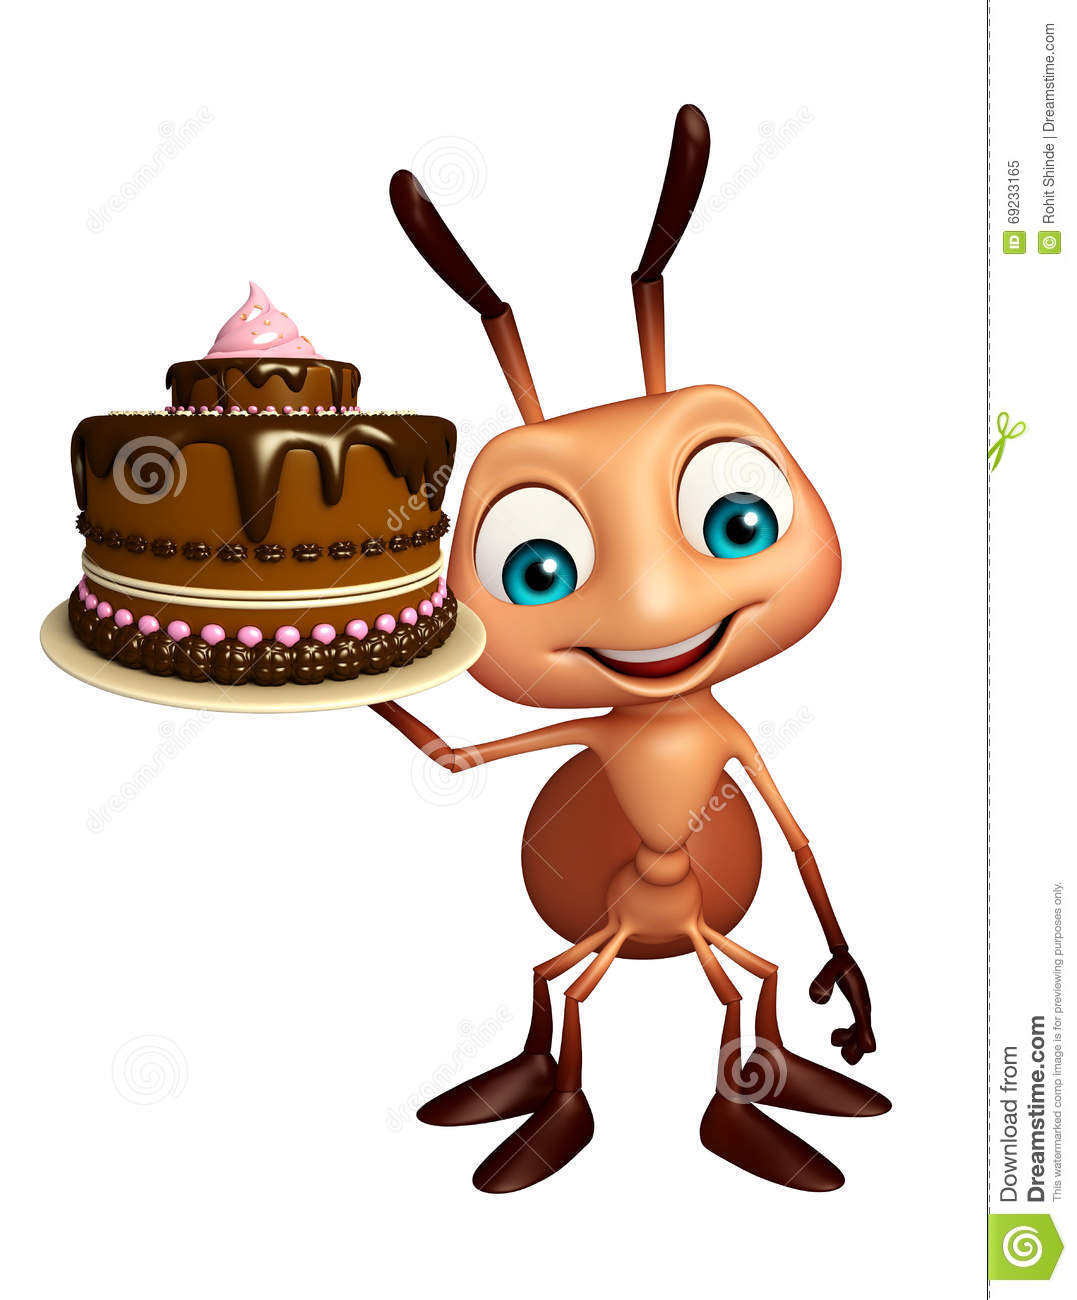 Cartoon Character Design For Cake : Ant cartoon character with cake stock illustration image